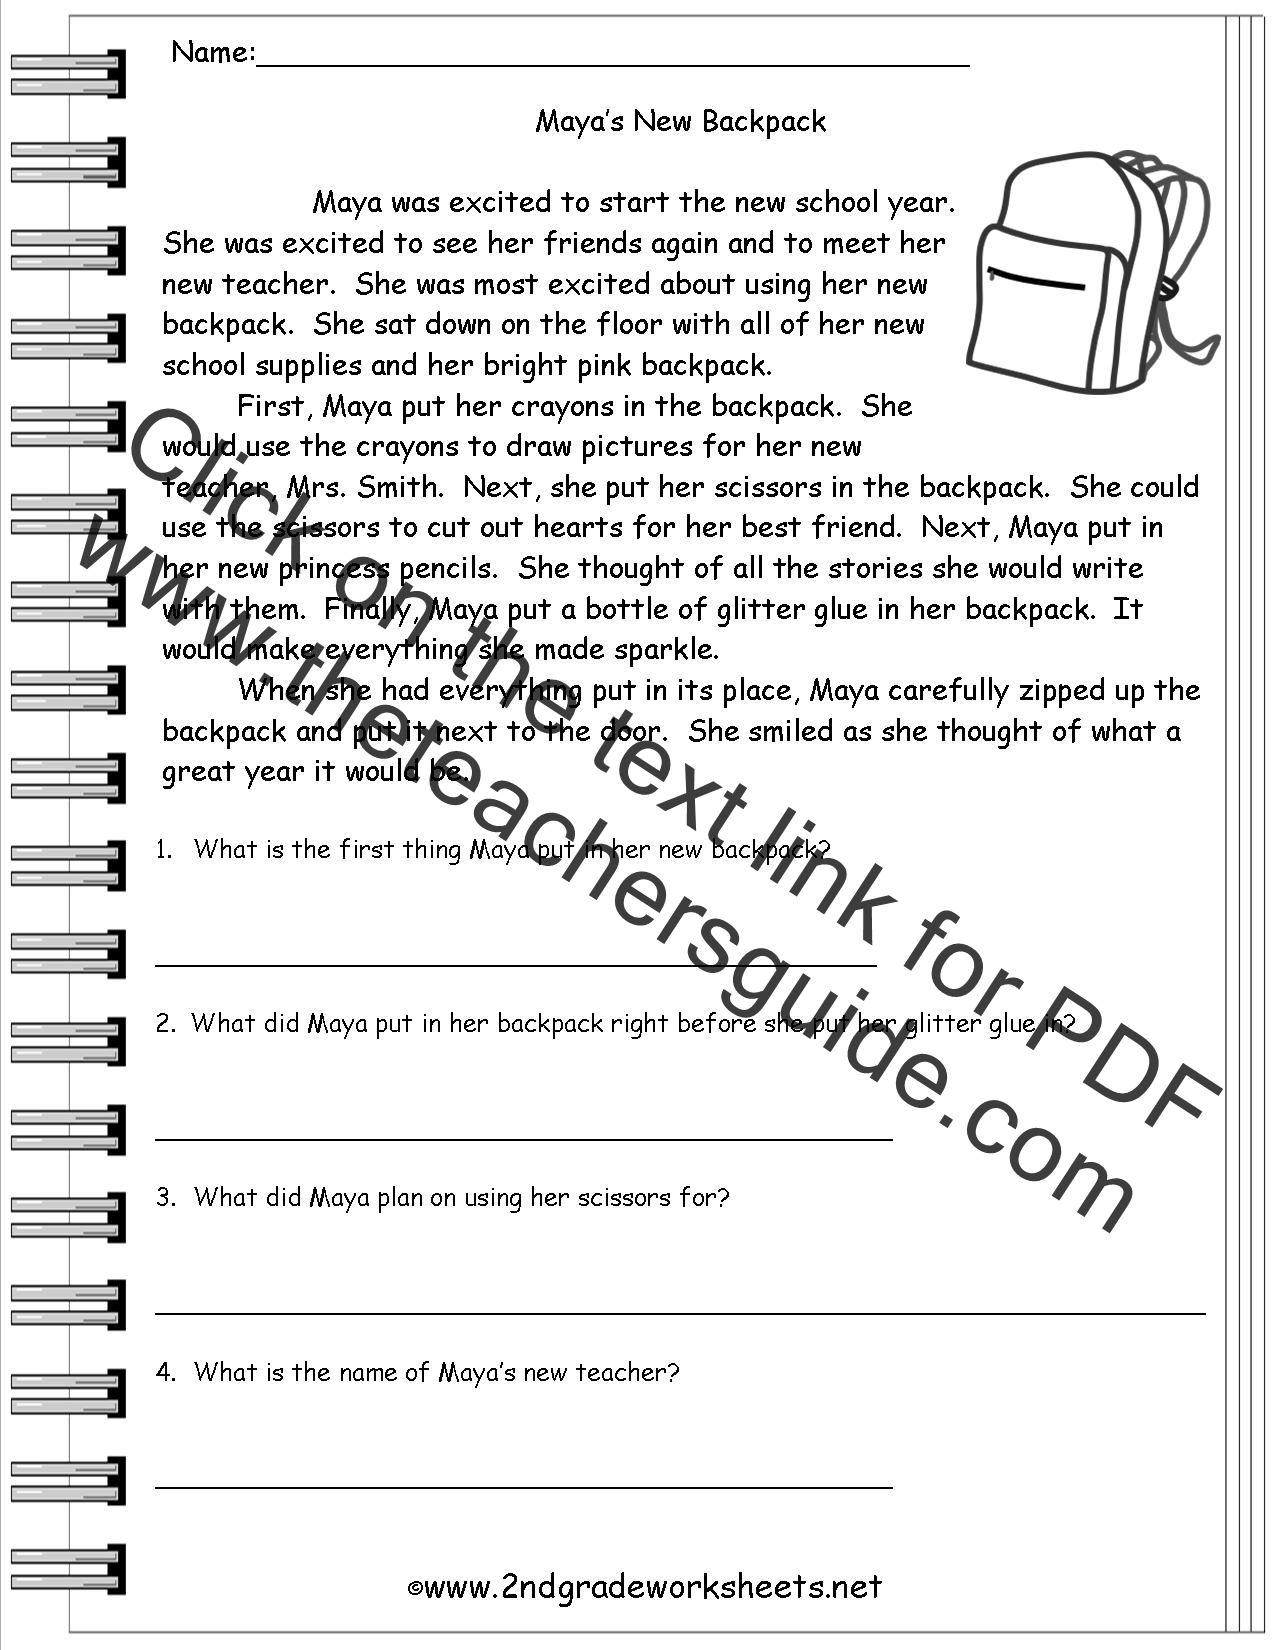 Worksheets Reading Worksheets For 4th Grade reading worksheeets worksheets